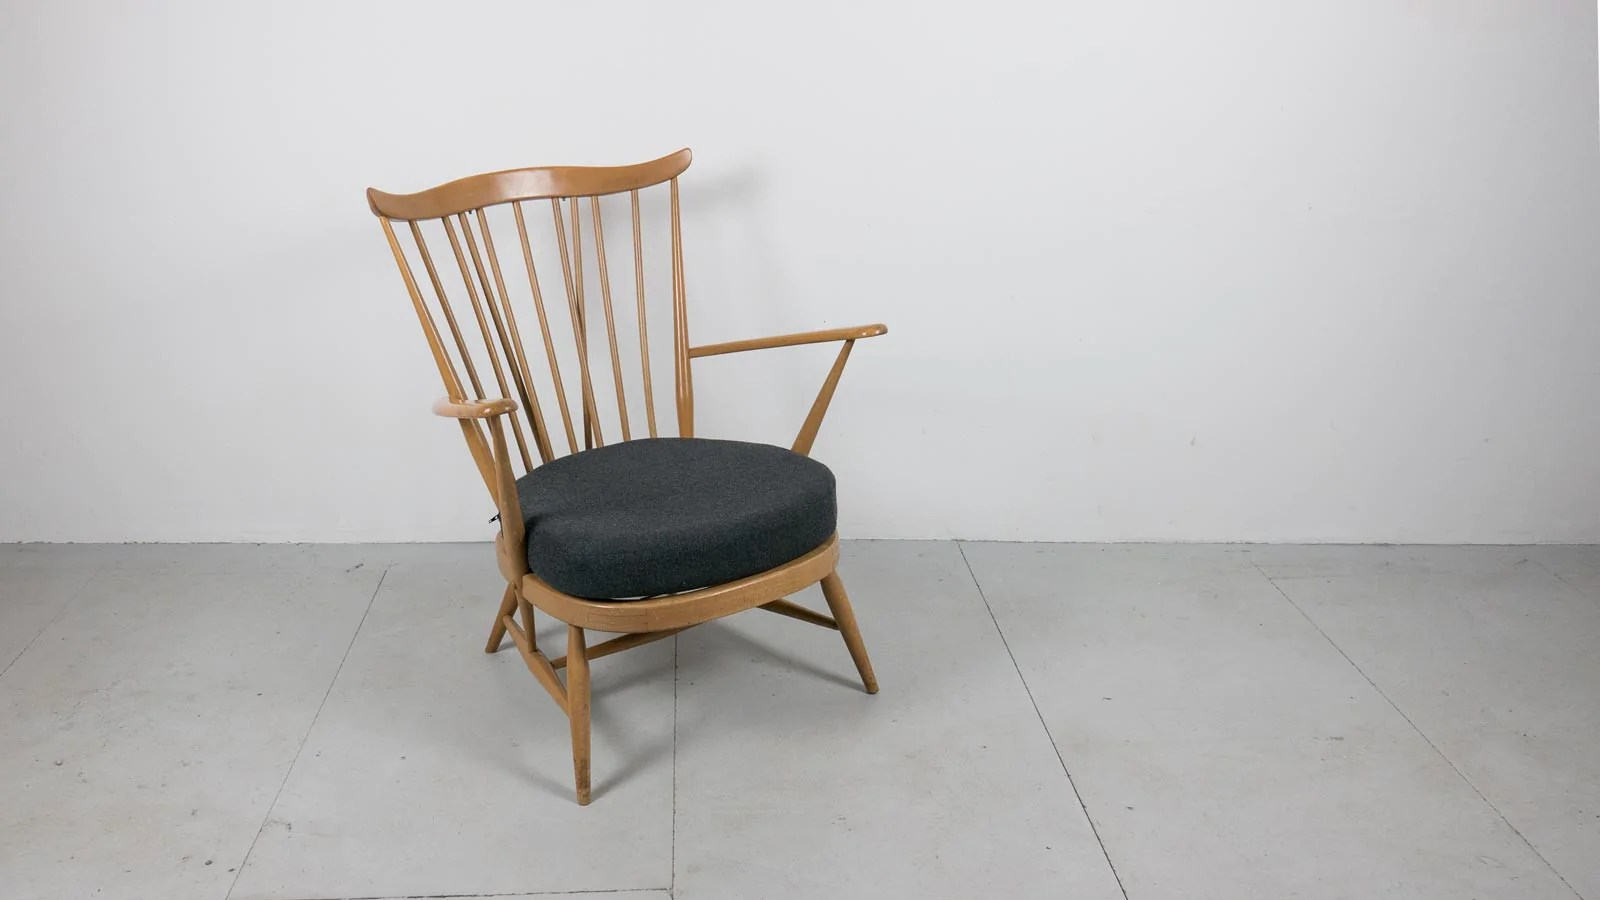 Ercol Easy Chairs For Sale Pair Of Ercol Windsor Armchairs Retro Ercol Easy  Chairs For SaleErcol Easy Chairs For Sale   pairofercolwindsorarmchairsjpg 700  . Ercol Easy Chairs For Sale. Home Design Ideas